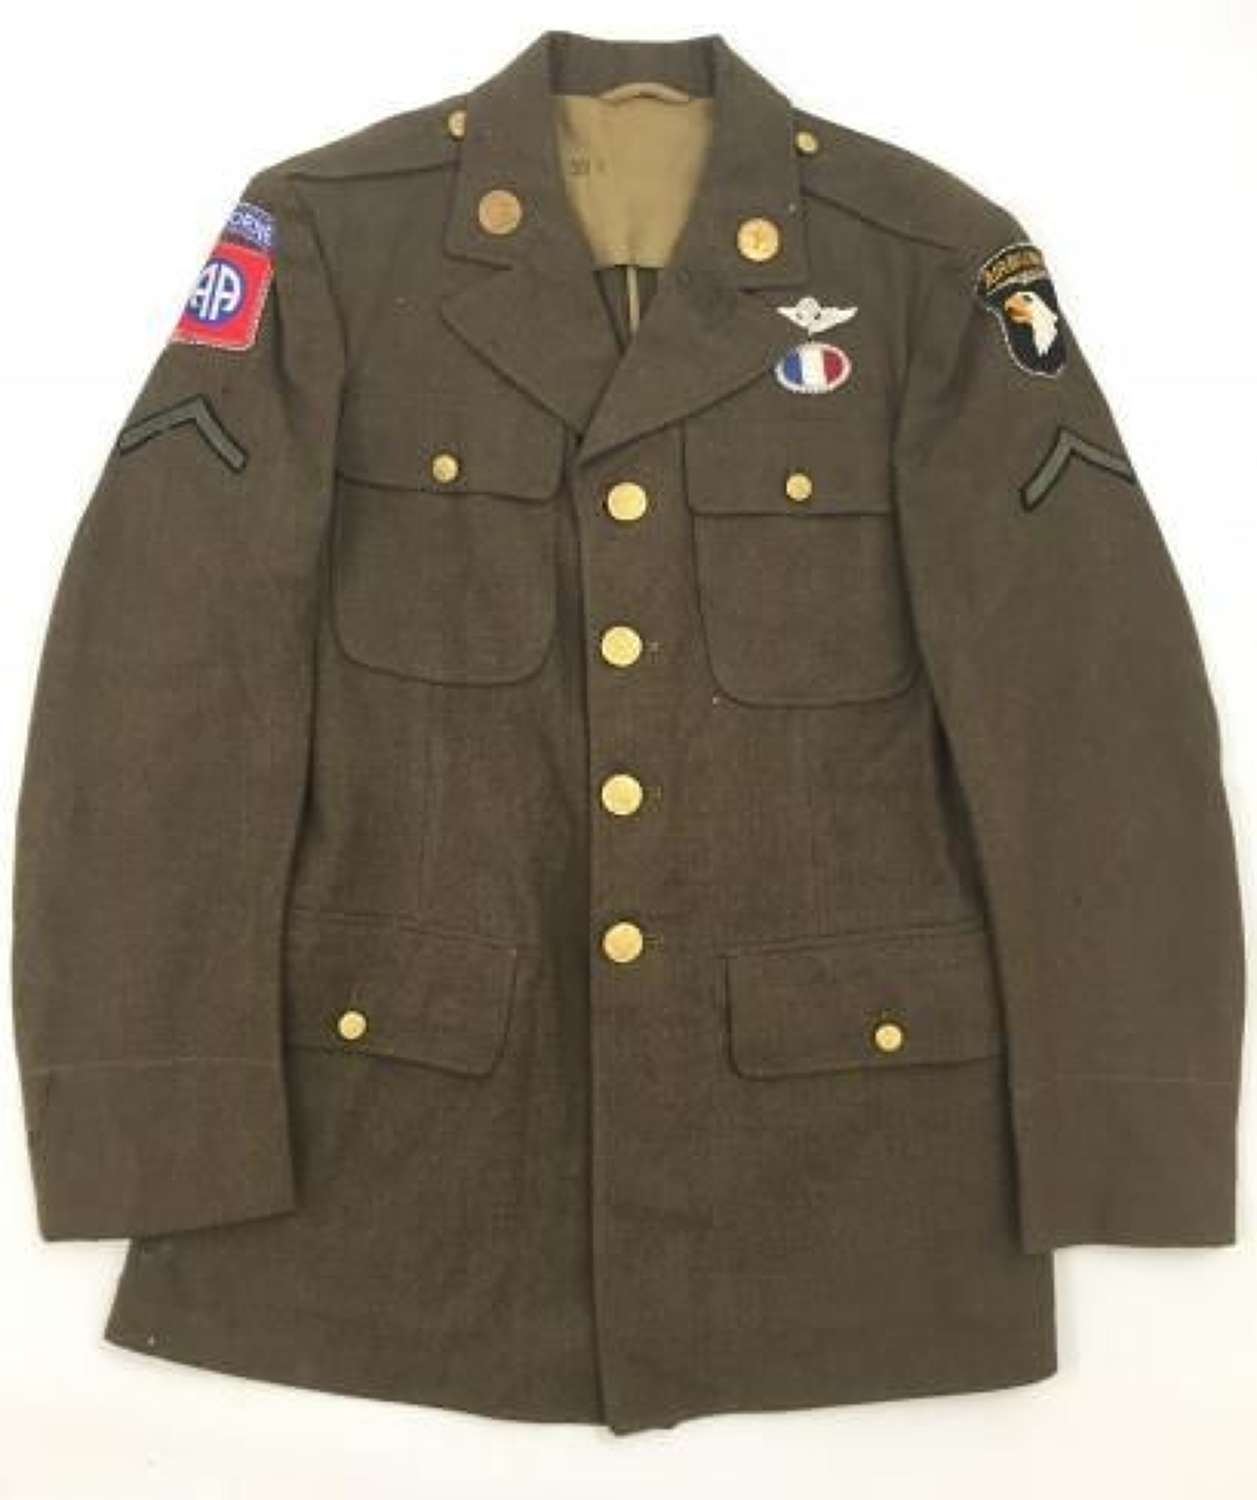 Original 1942 Dated US Enlisted Men's Tunic with Airborne Tunic - Size 37 R